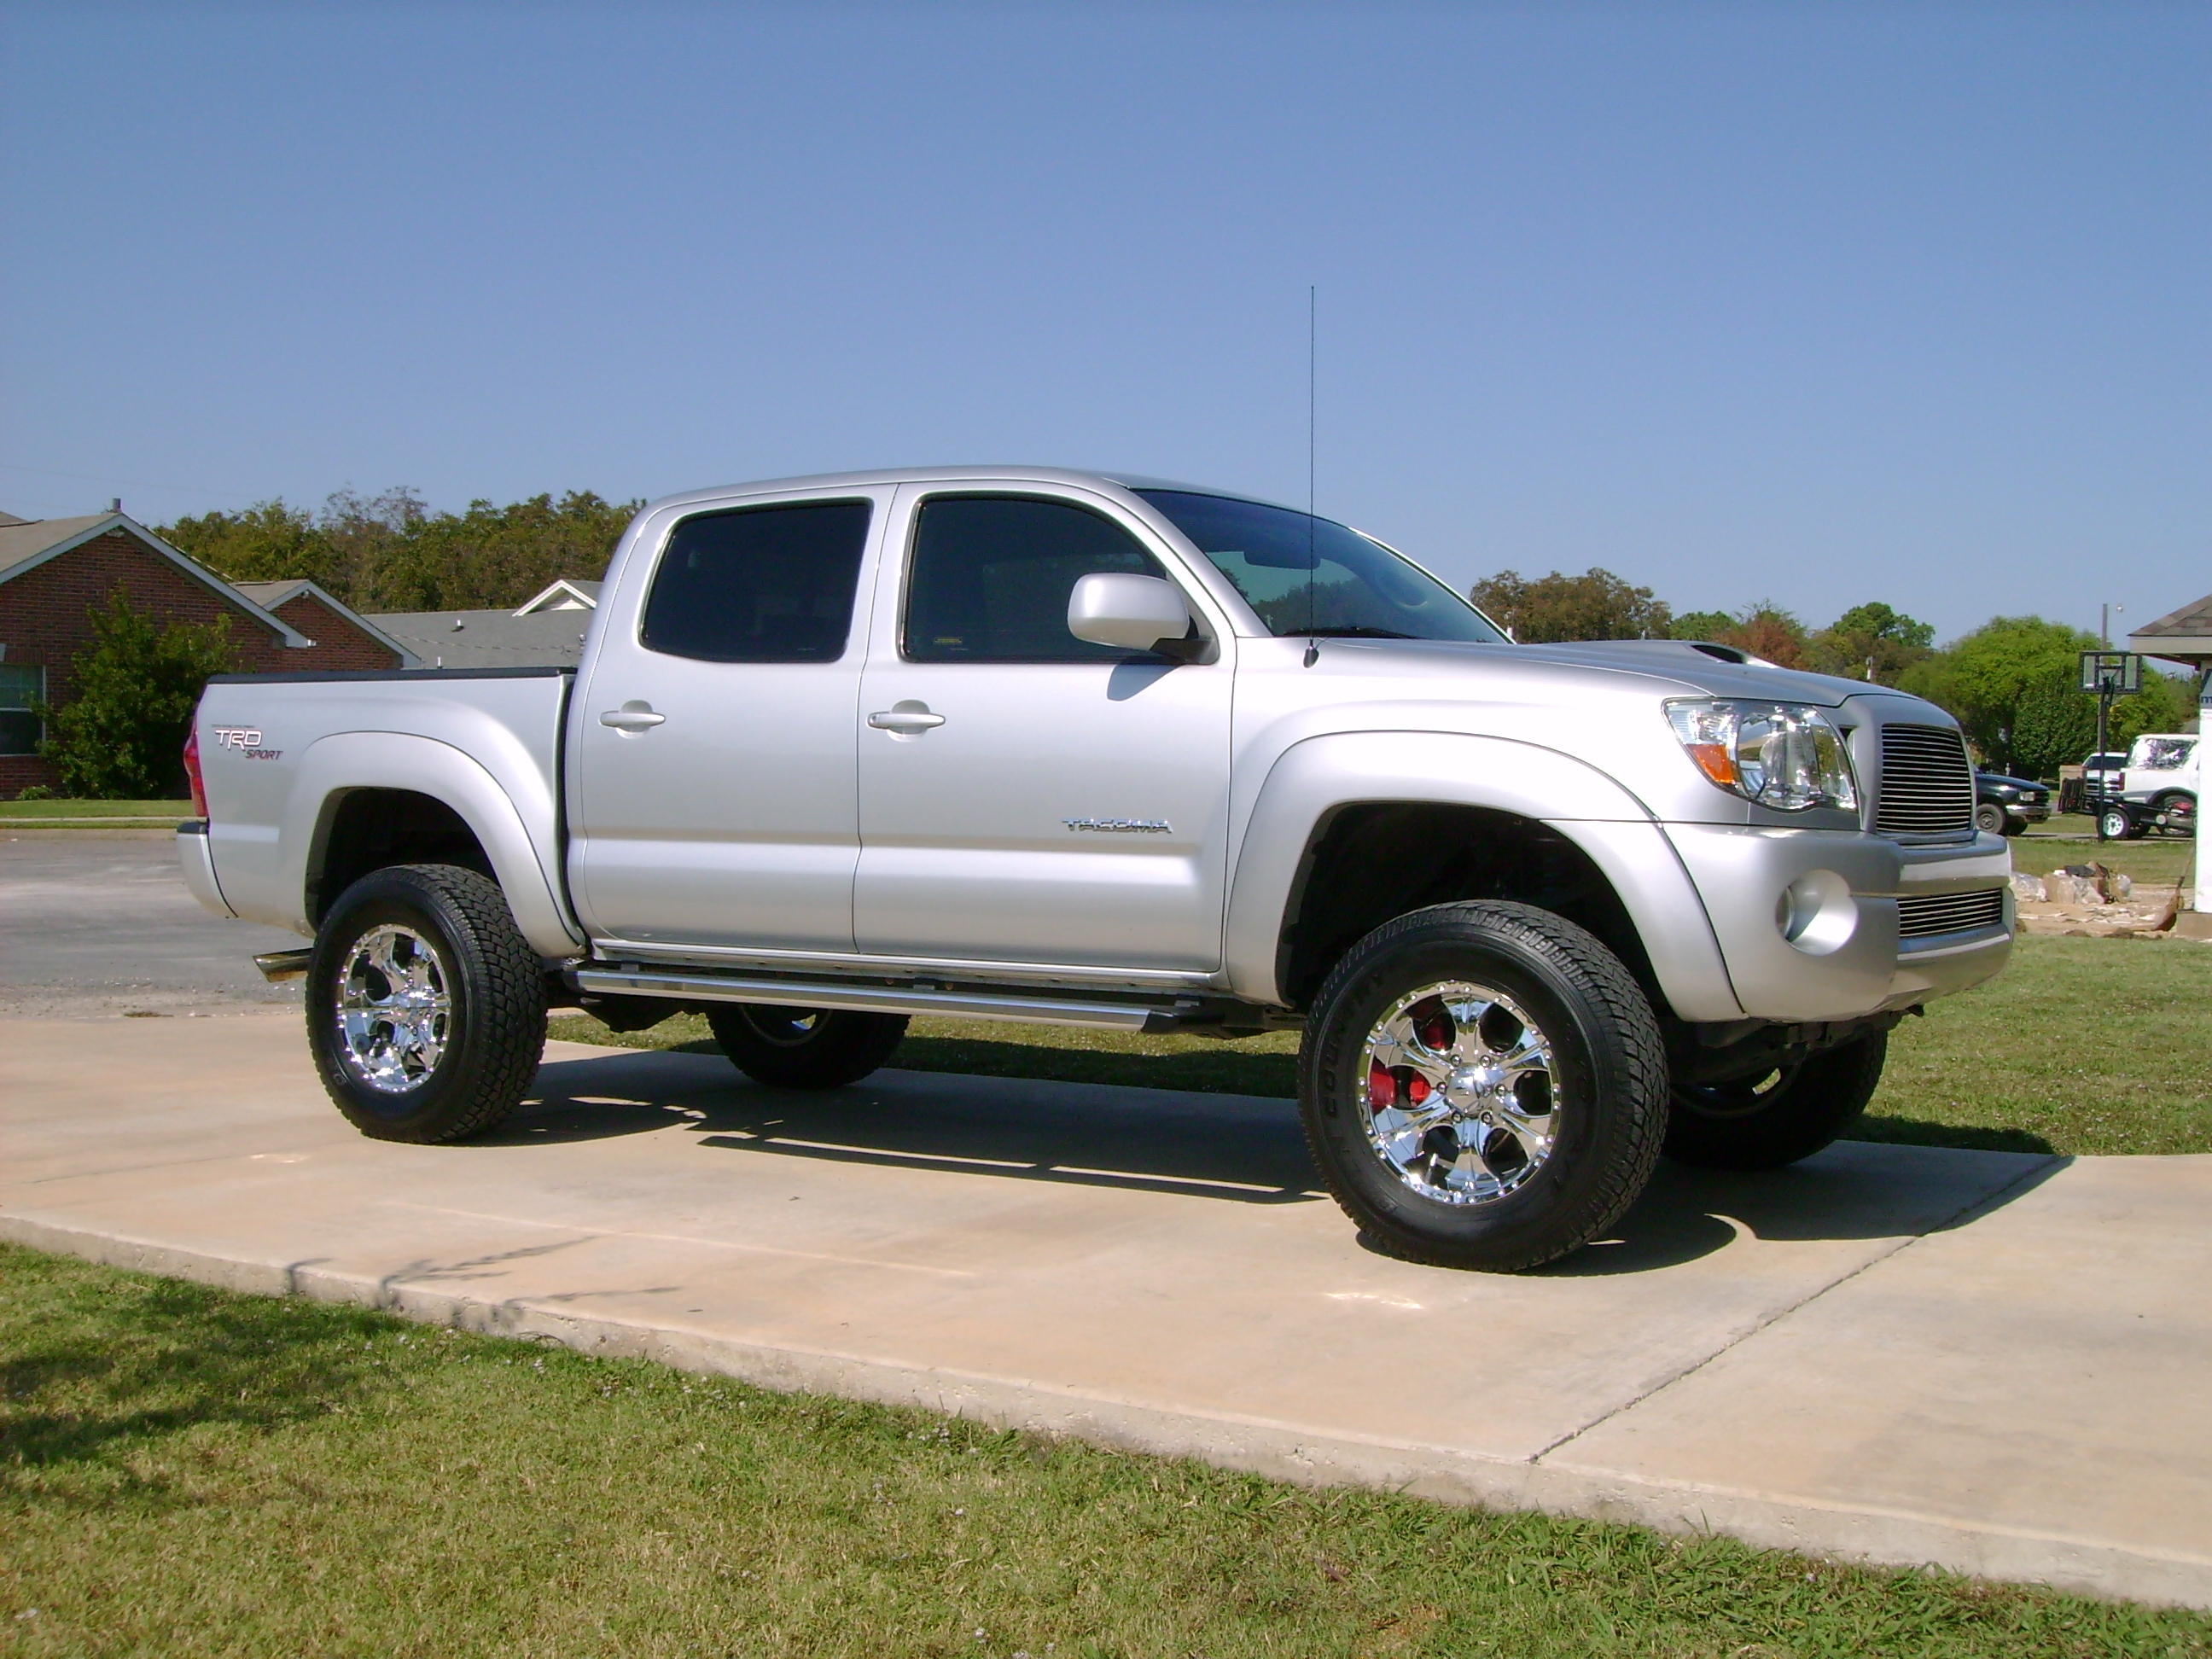 yfzjen 2005 toyota tacoma xtra cab specs photos modification info at cardomain. Black Bedroom Furniture Sets. Home Design Ideas